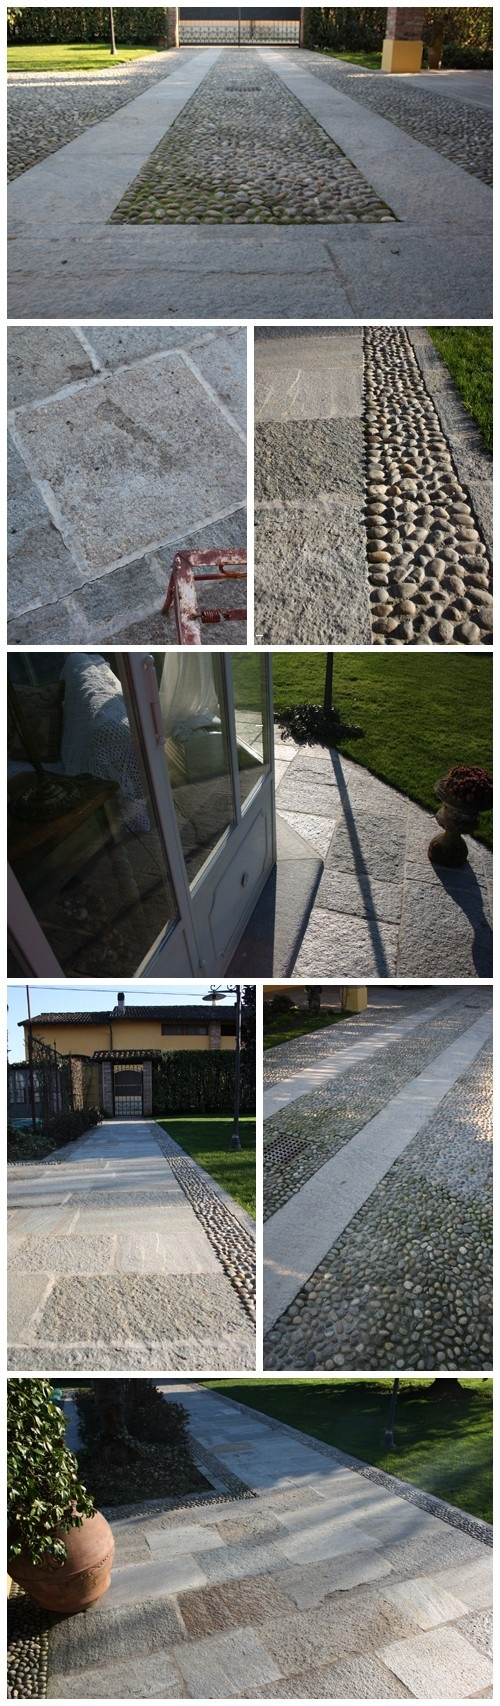 #Pebbles and Luserna's #stones remind a calssic old style #garden